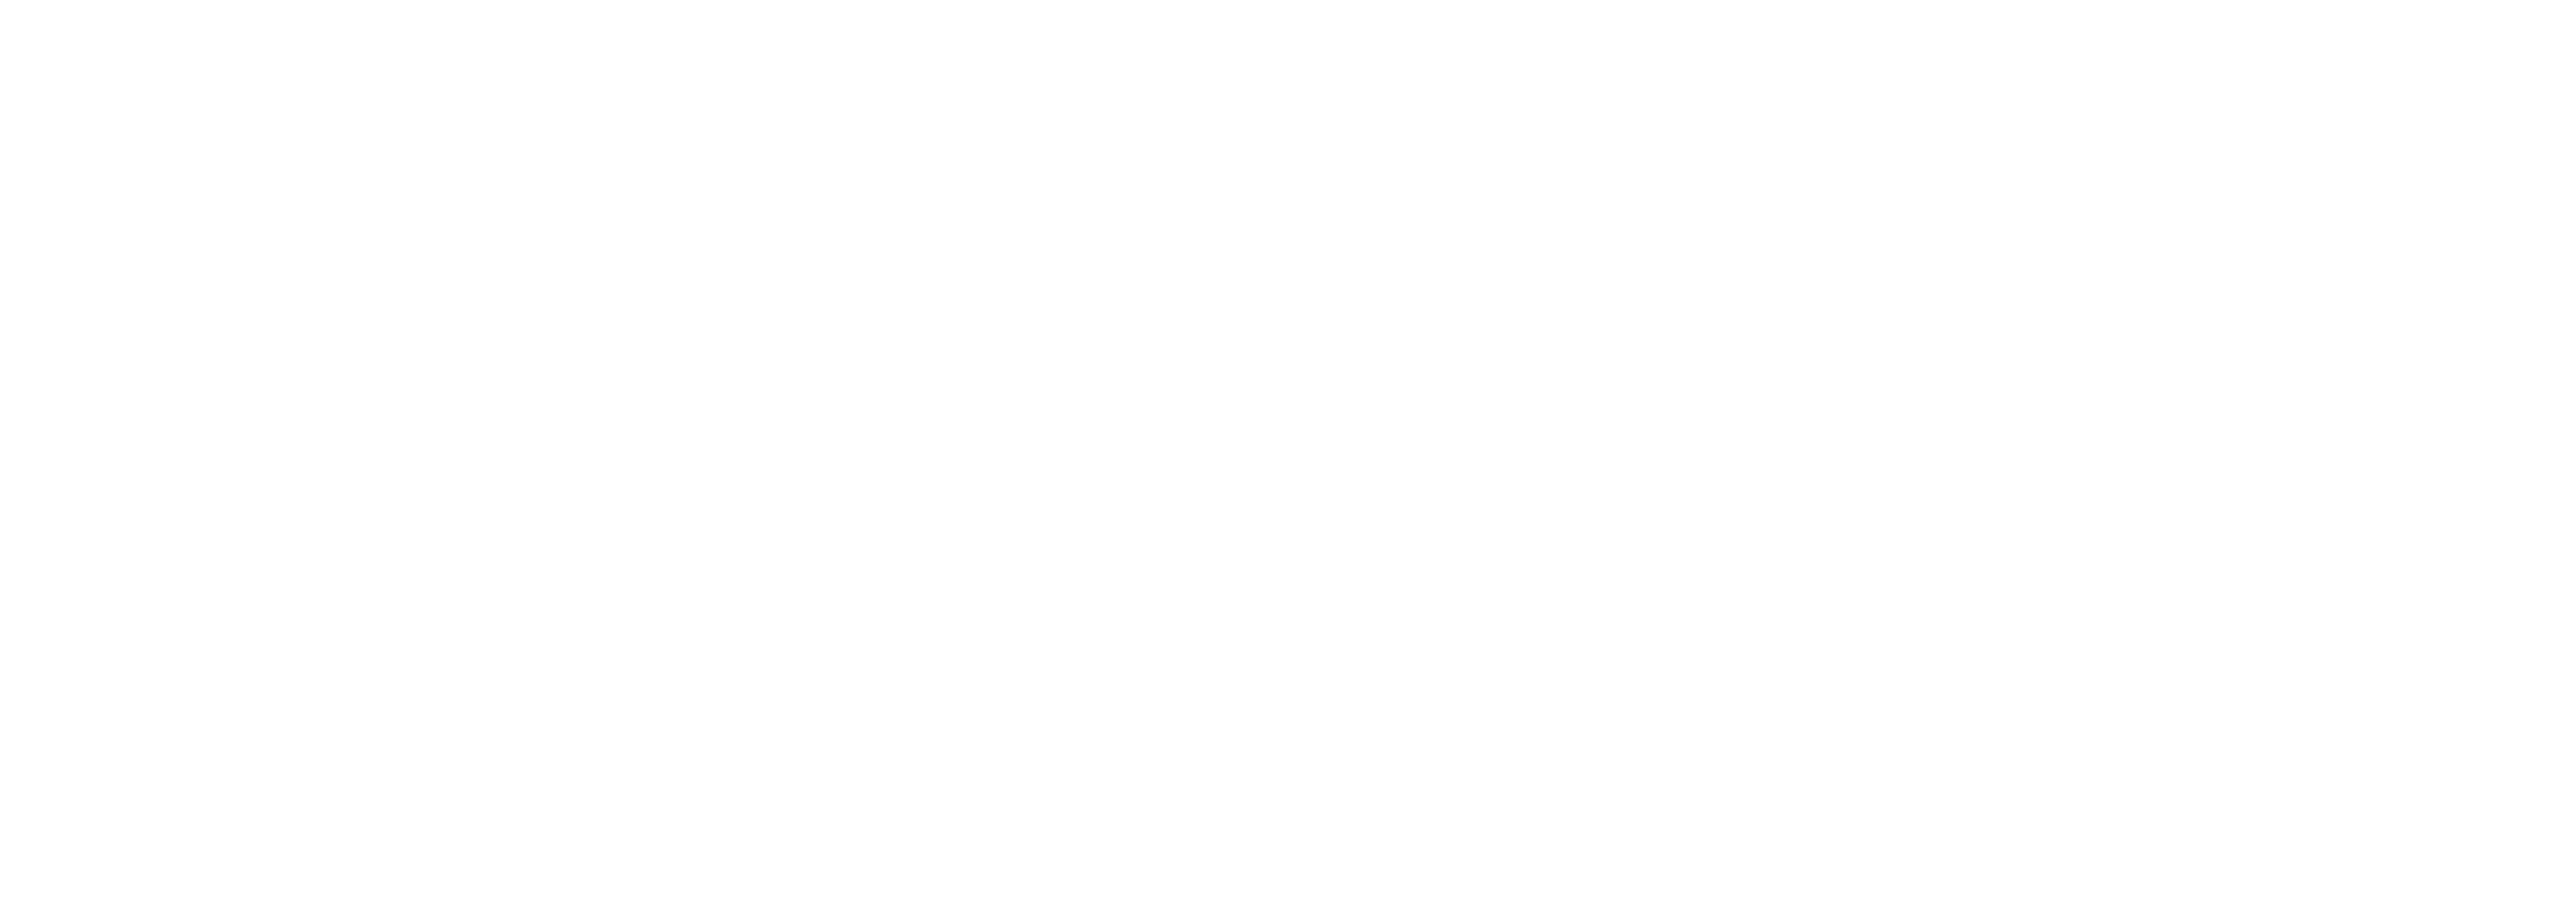 Alliance for Global Growth